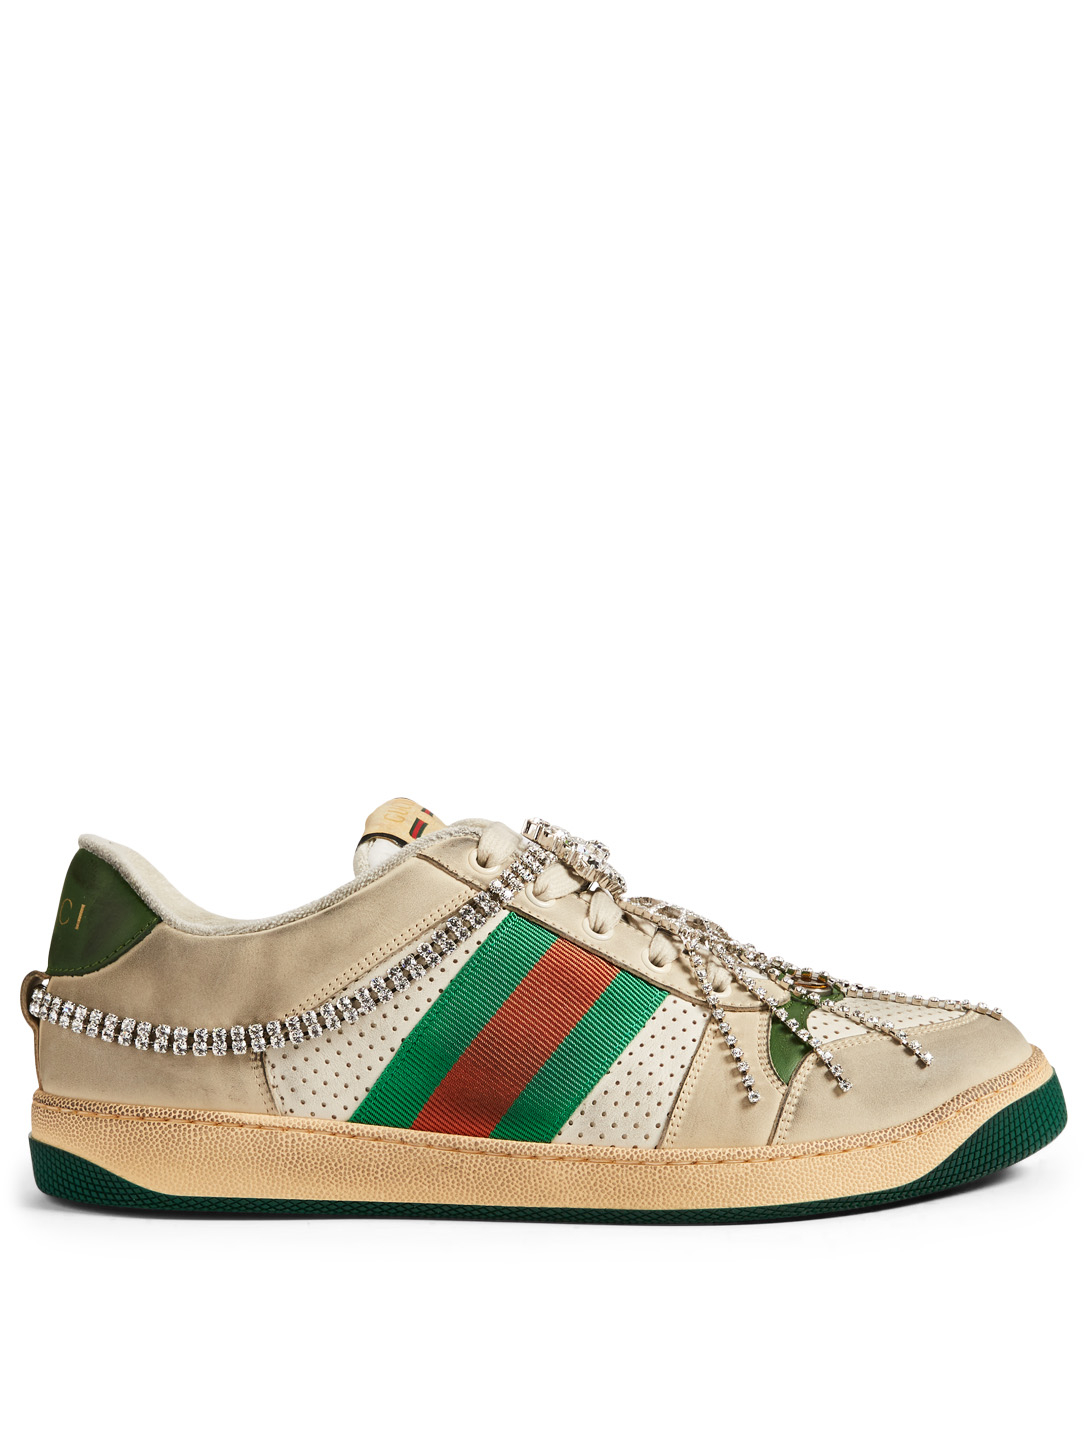 GUCCI Screener Leather Sneakers With Crystals Men's Neutral